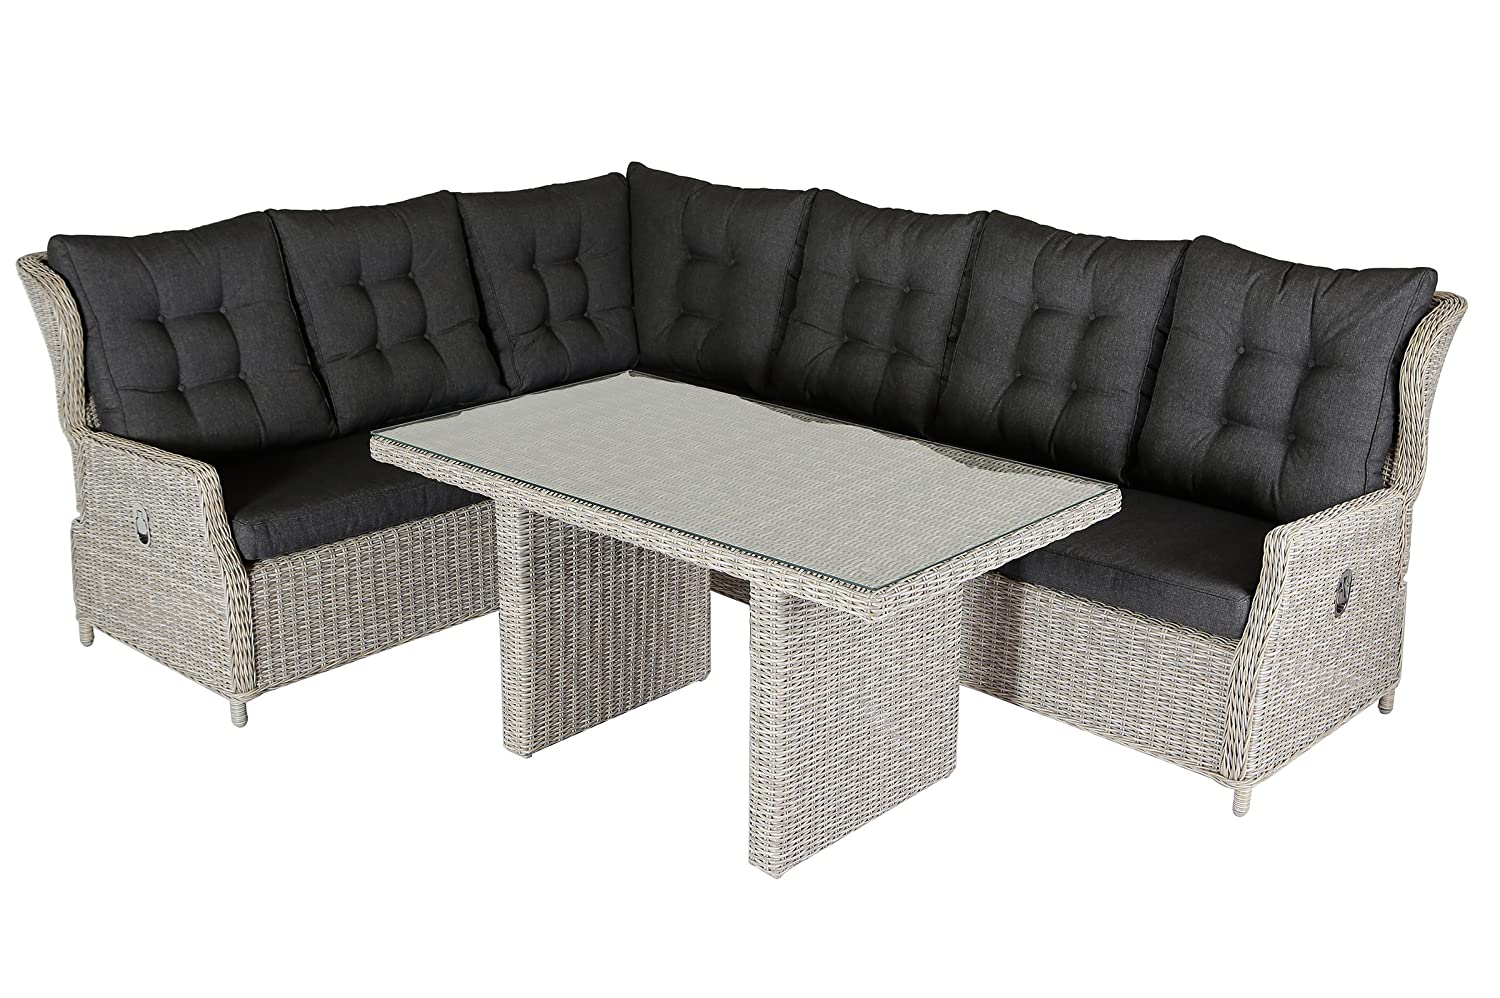 villana exklusive eck loungegruppe f r 6 personen aus hochwertigem polyrattan in braun. Black Bedroom Furniture Sets. Home Design Ideas